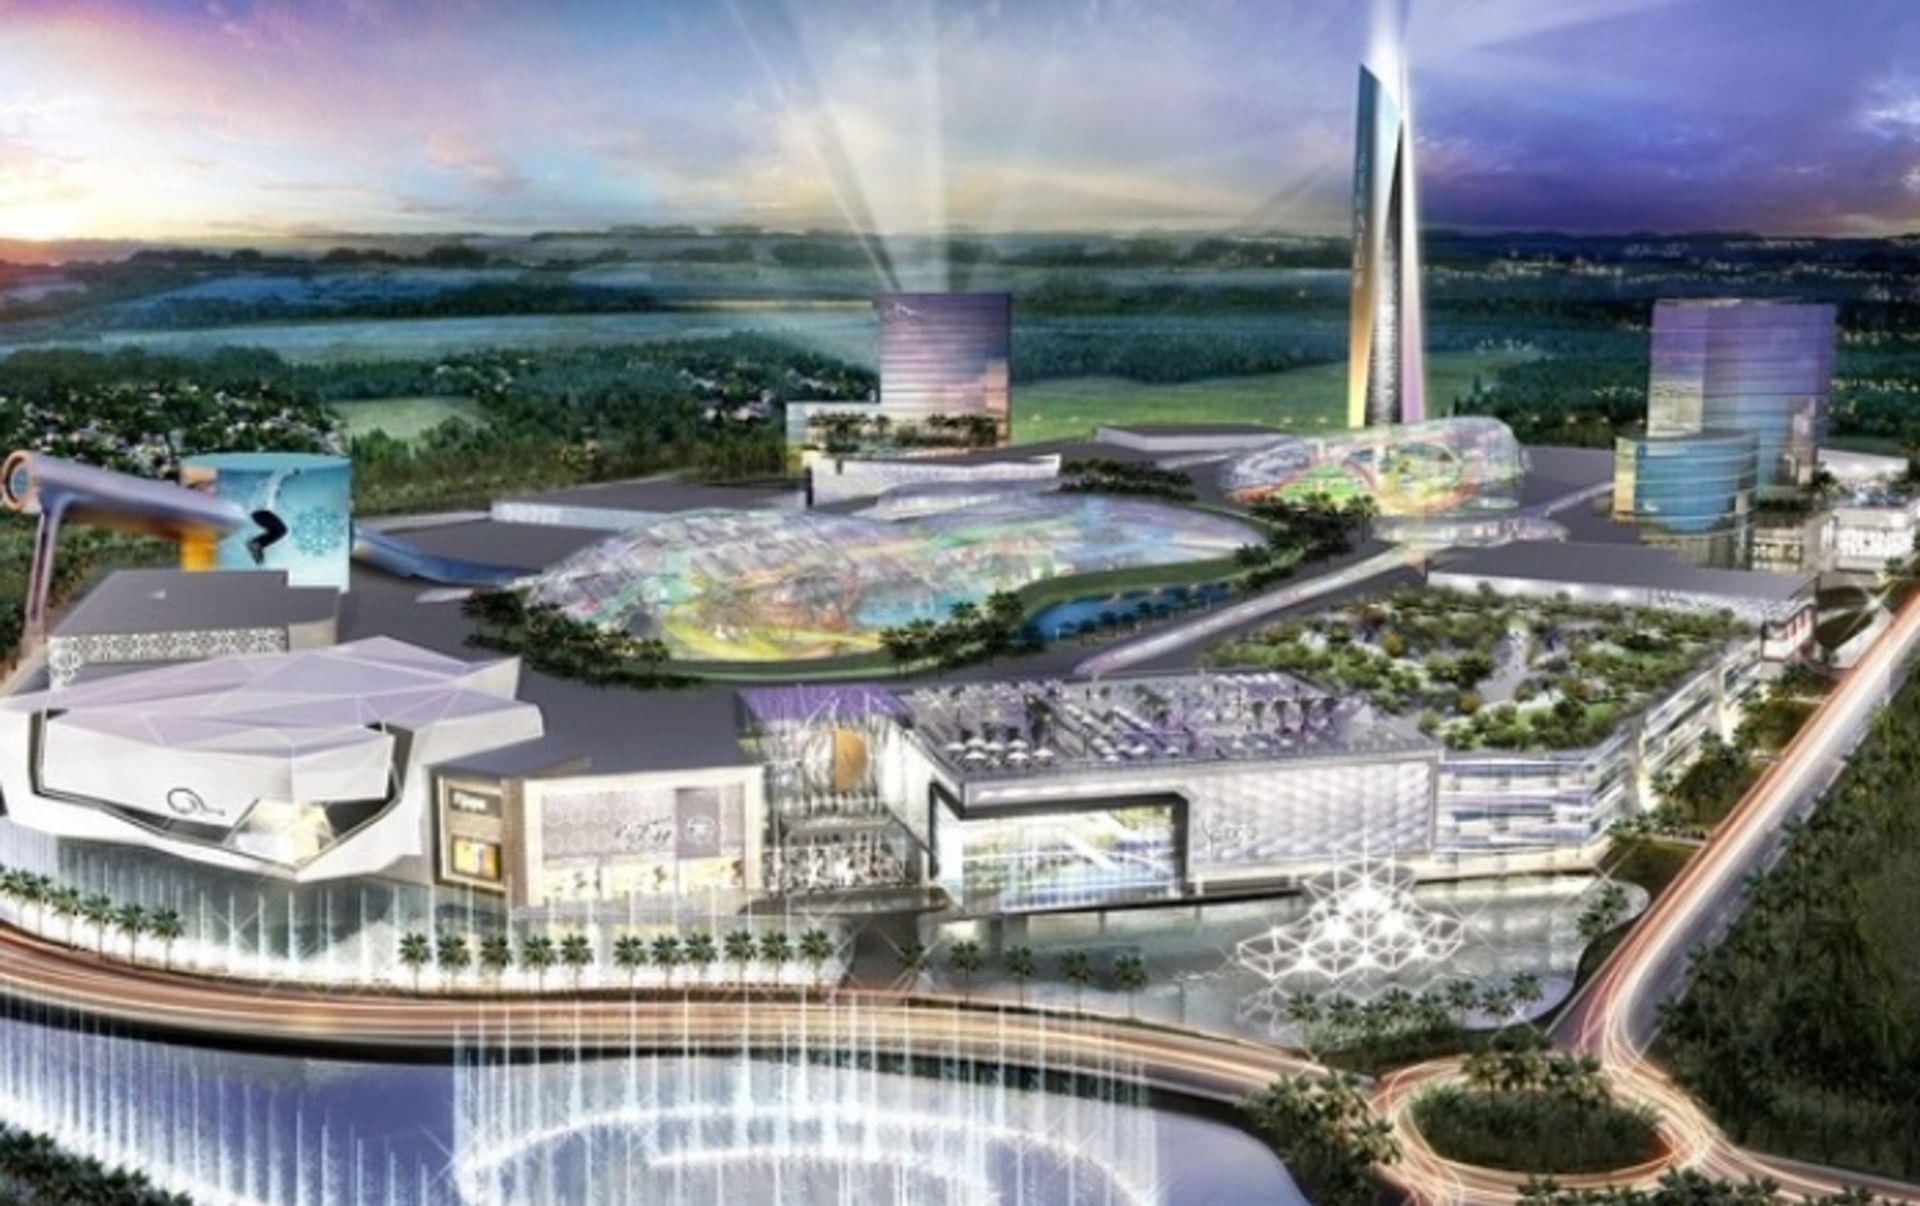 Triple Five's $4 Billion American Dream Miami Project Wins Final Approval from County Officials